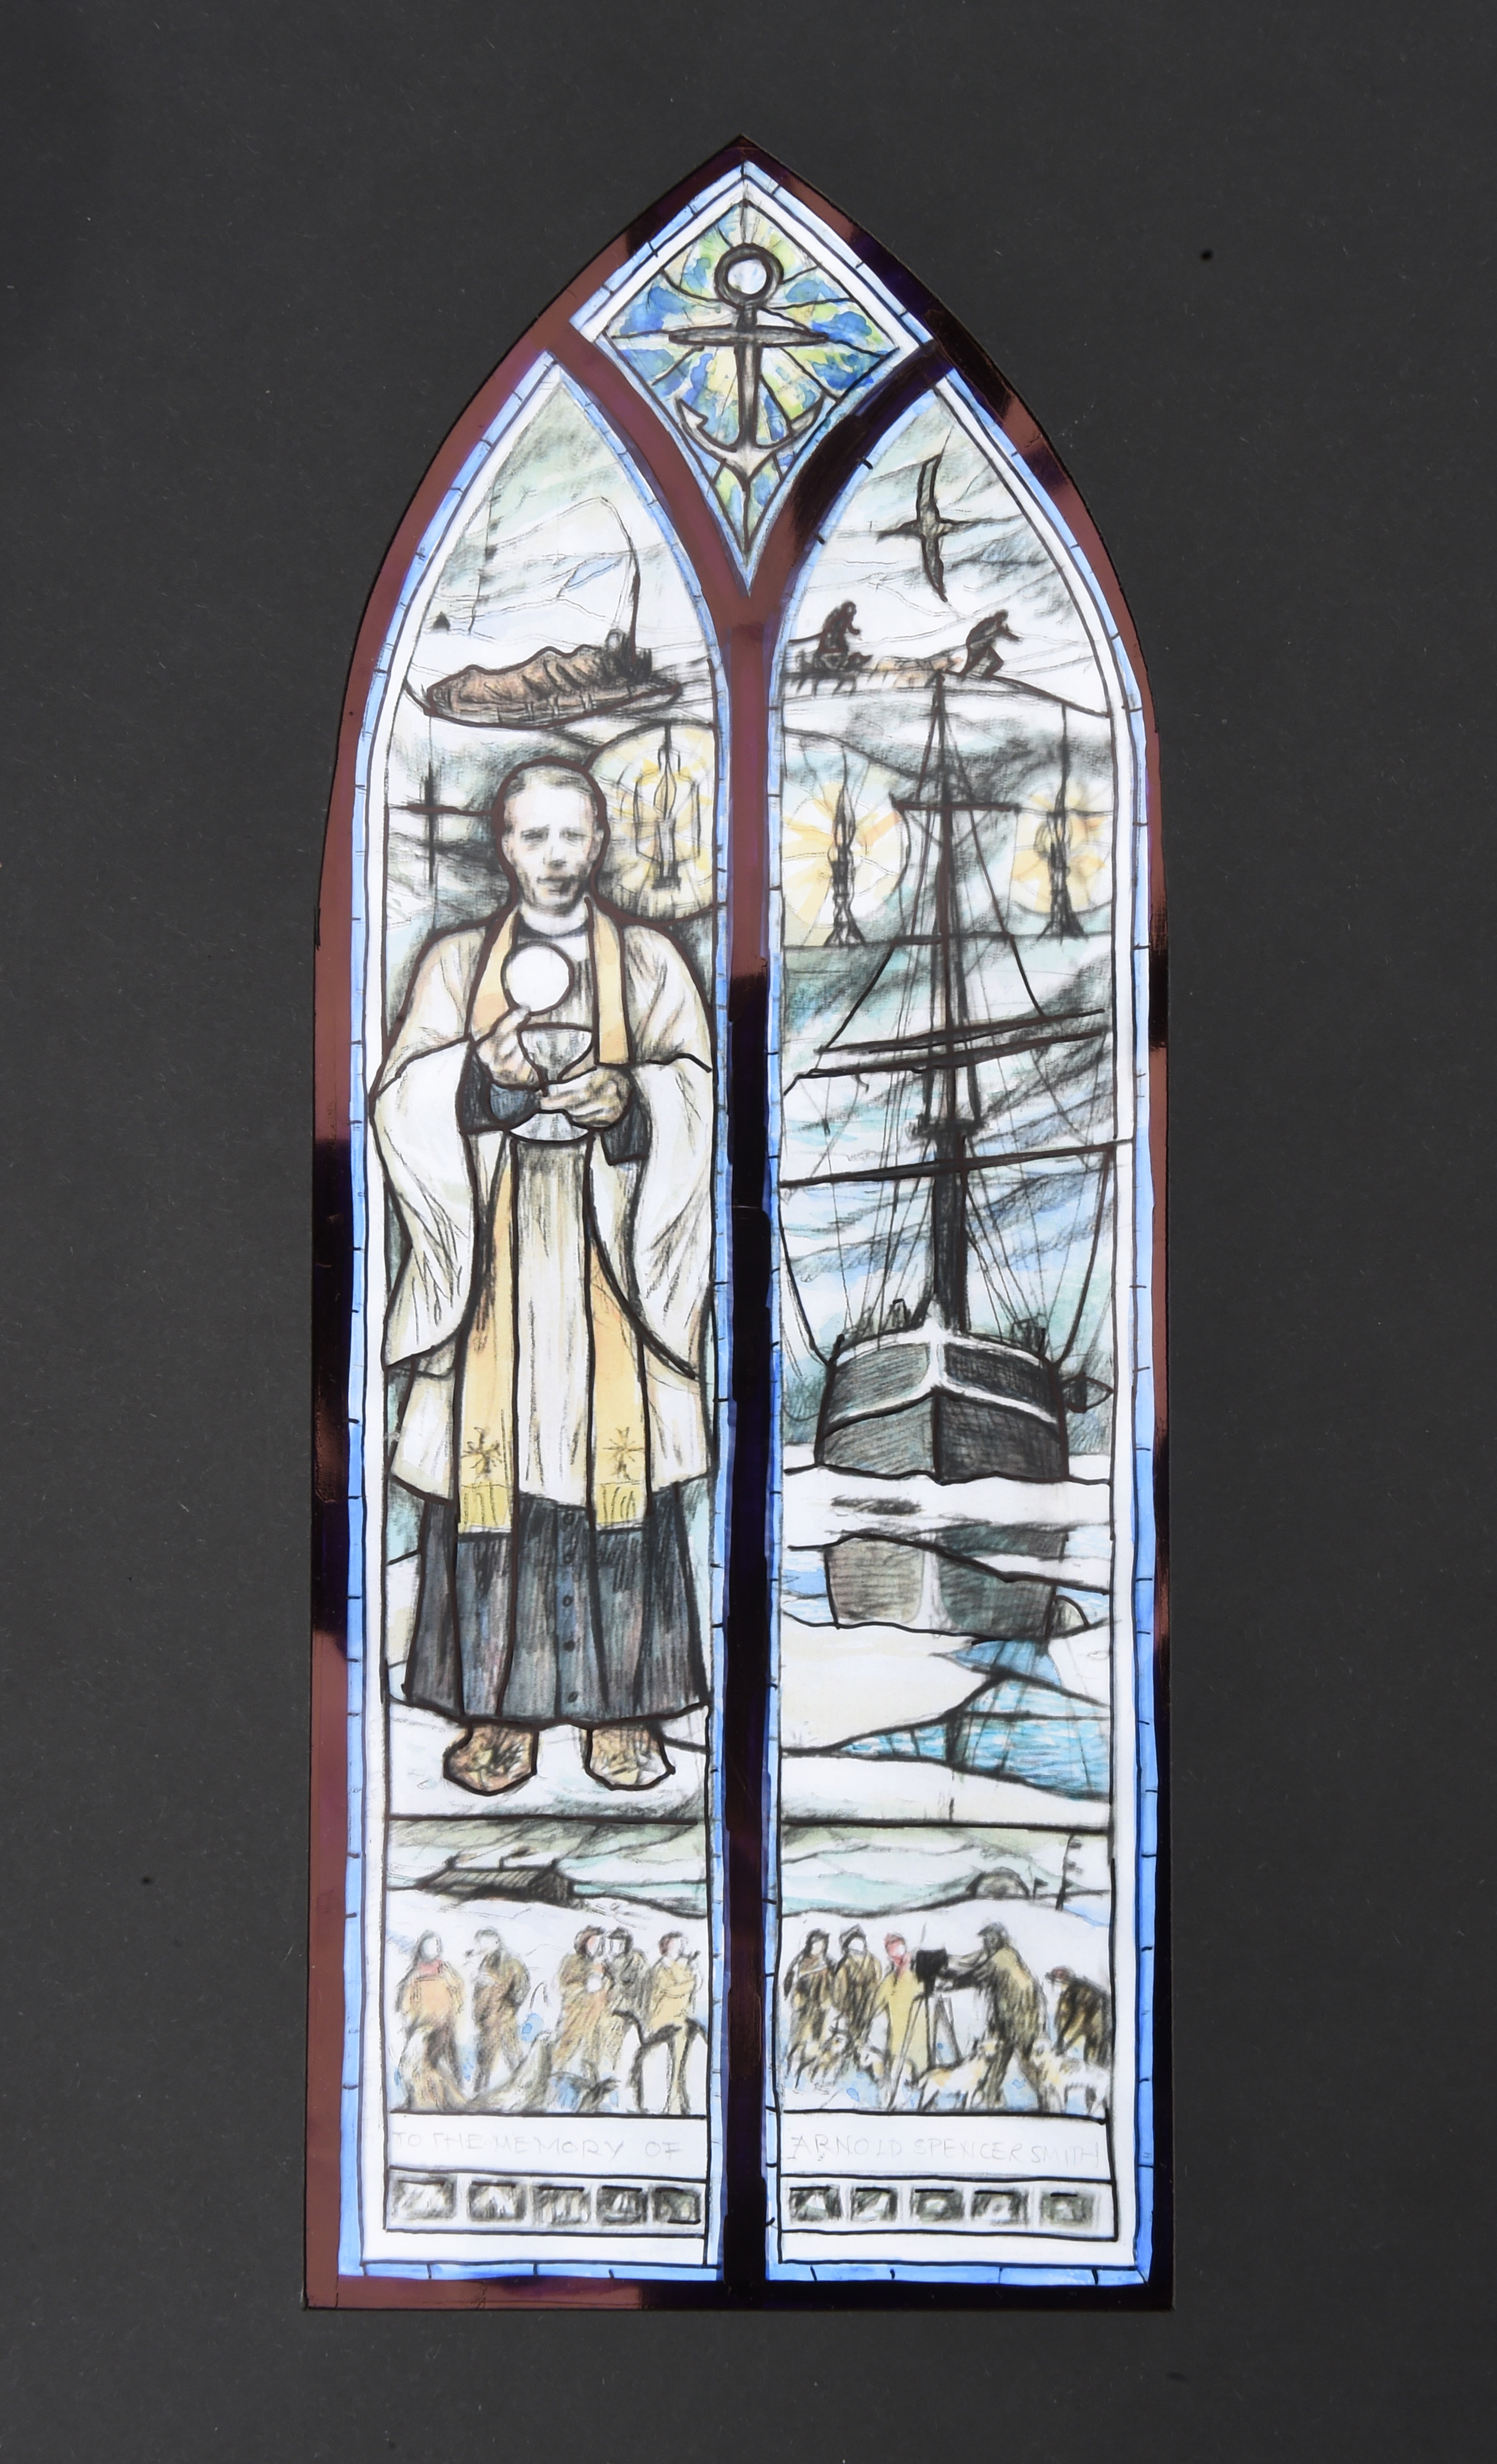 A rendering by Ms Packer of what the stained-glass window will look like.